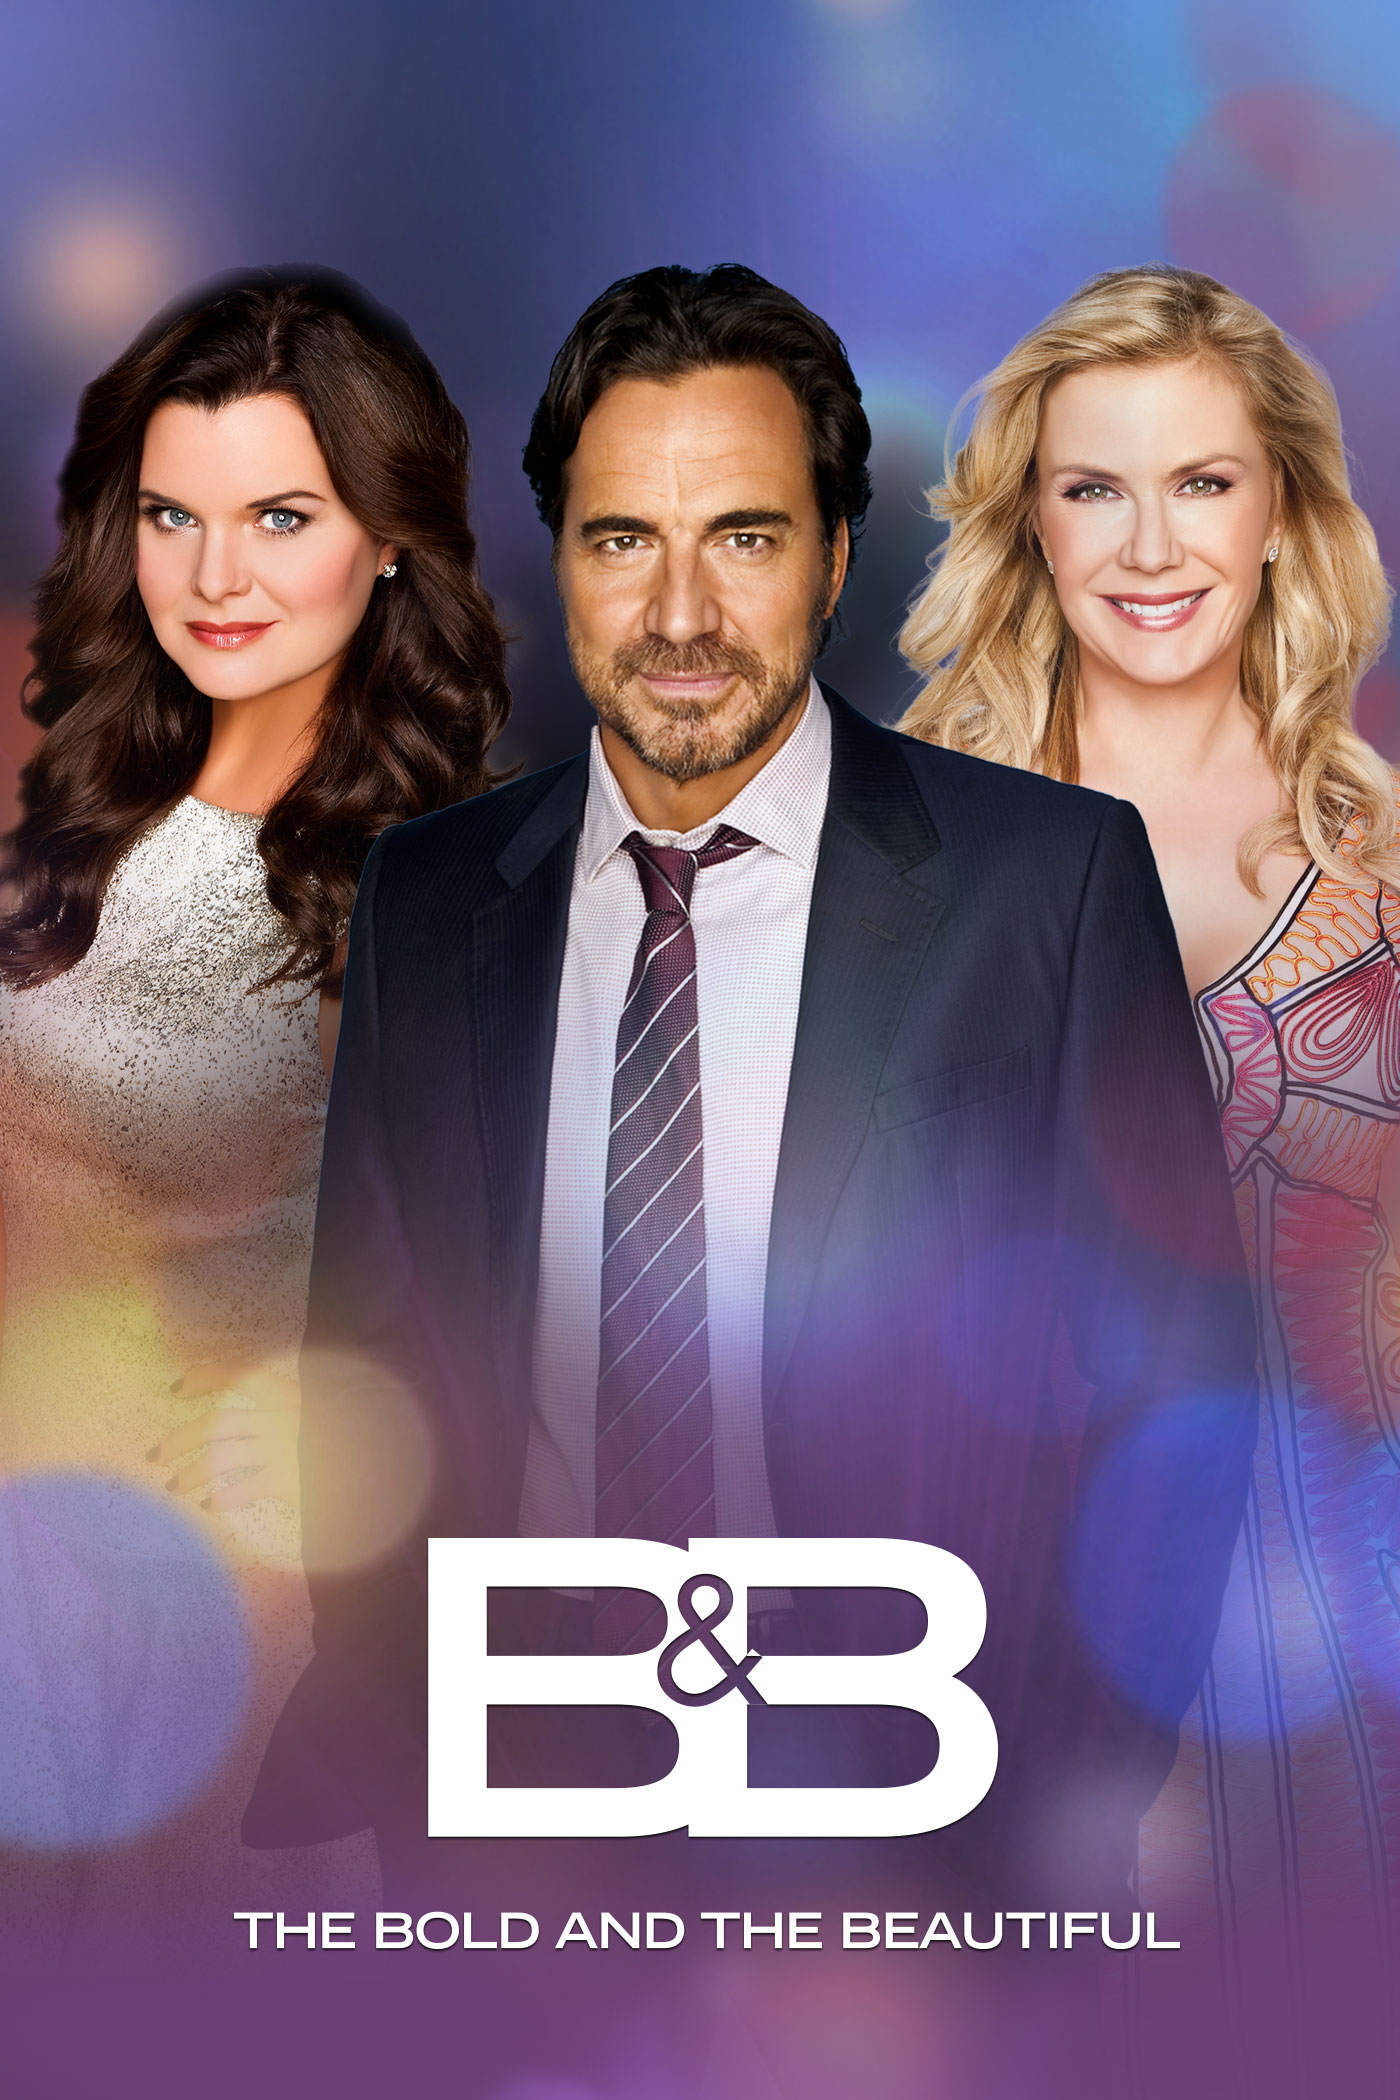 The.Bold.and.the.Beautiful.S32E228.WEB.x264-ROBOTS